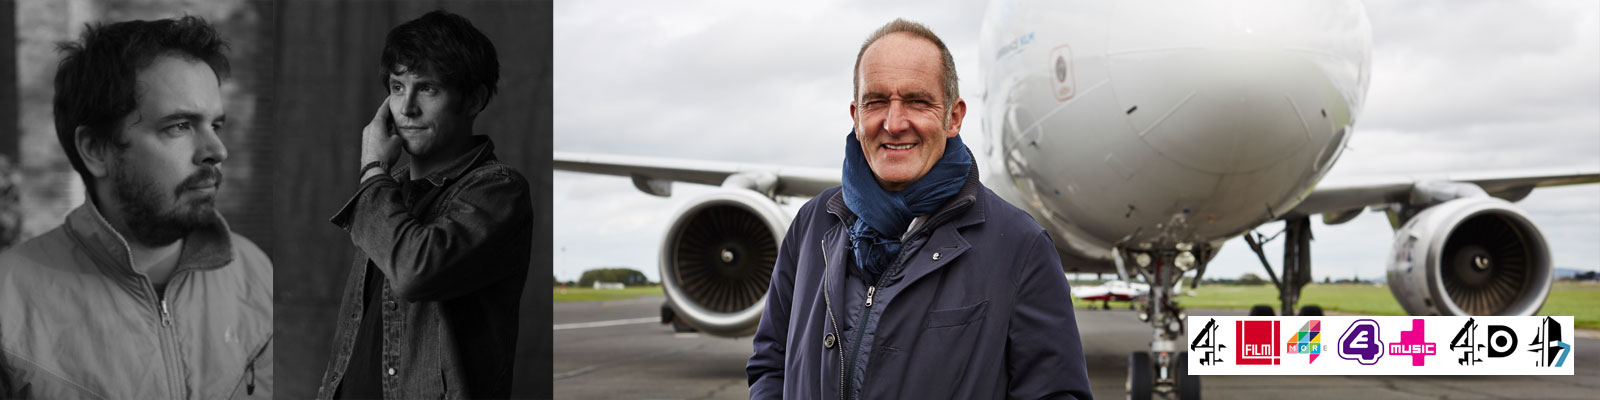 Kevin-McCloud-Harry-Dwyer-Charlie-Waller